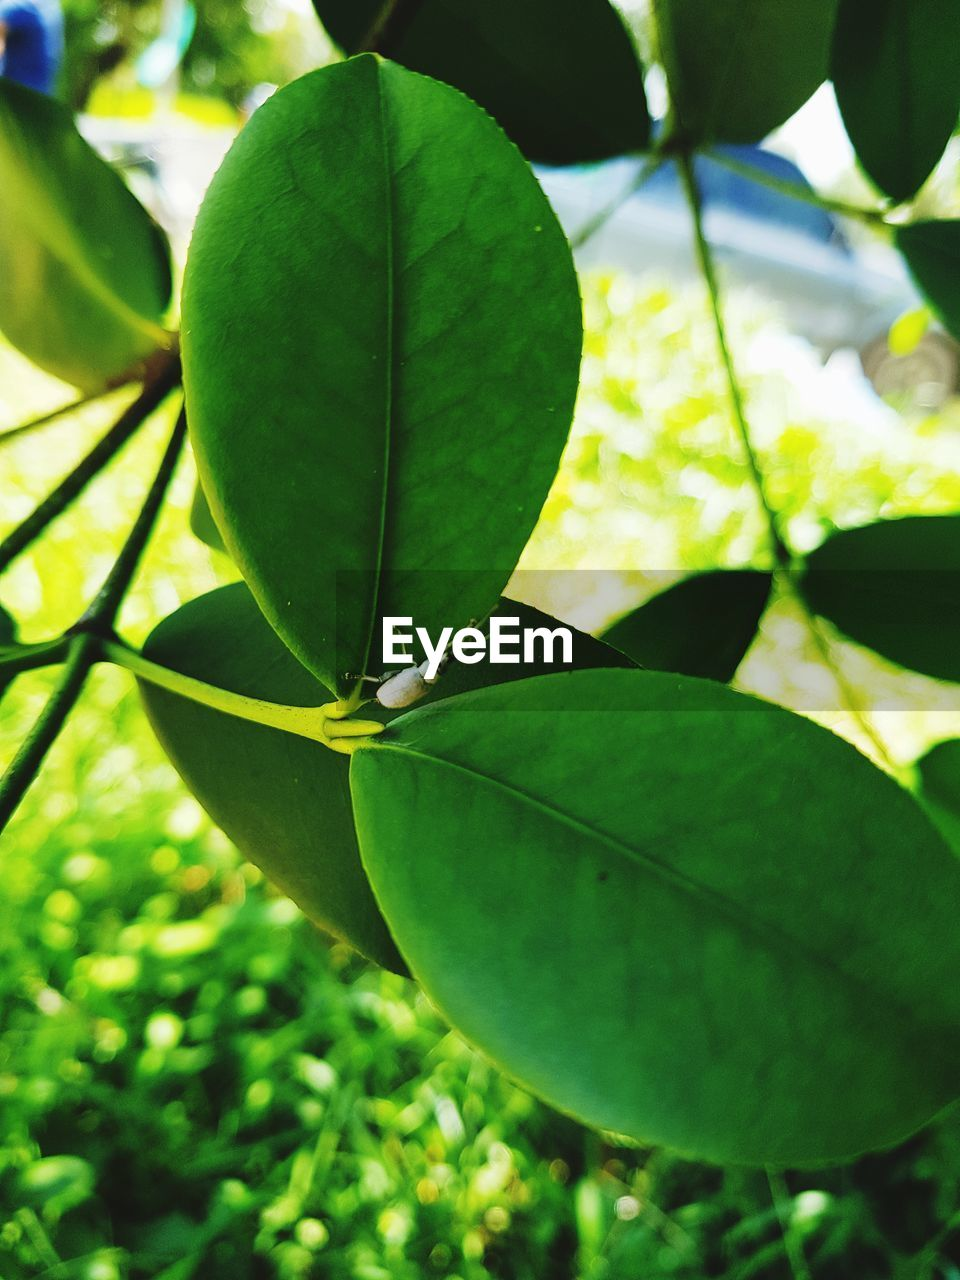 plant part, leaf, green color, plant, growth, close-up, day, nature, no people, beauty in nature, sunlight, focus on foreground, outdoors, freshness, selective focus, tree, fruit, land, high angle view, green, leaves